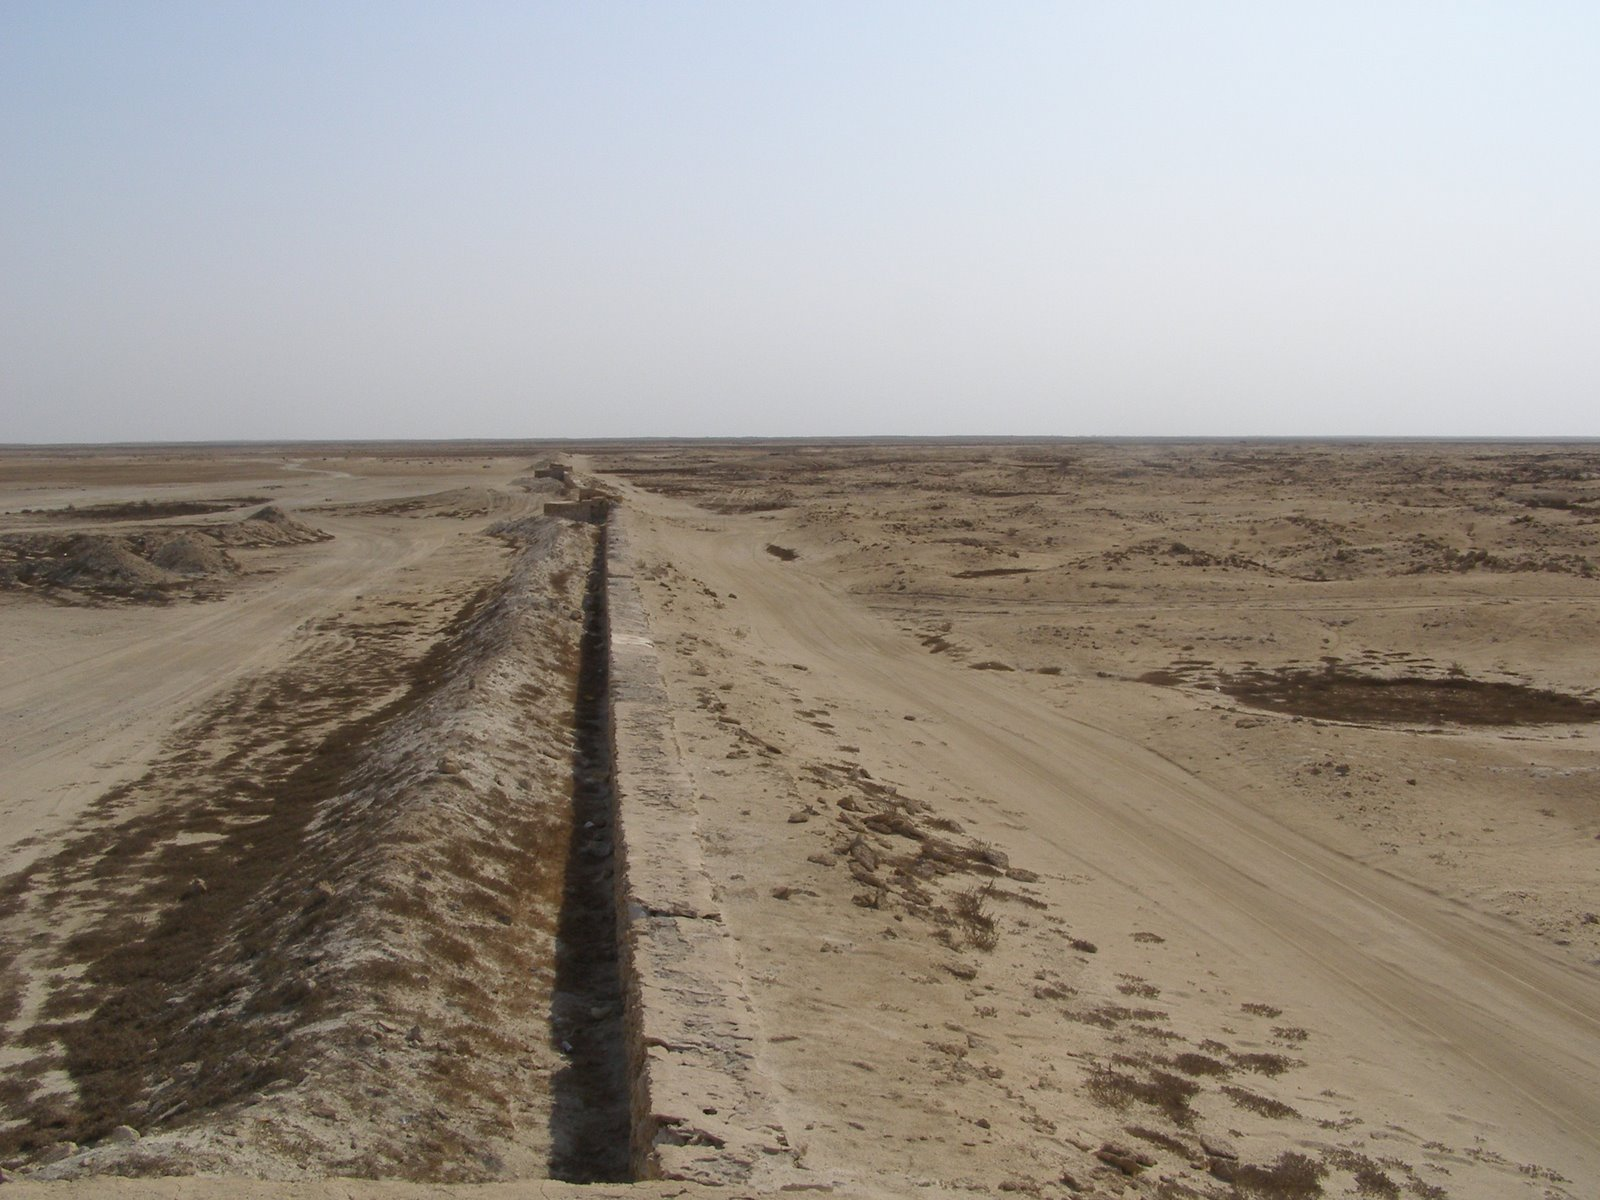 [Al+Zubarah+town+outside+wall1.JPG]